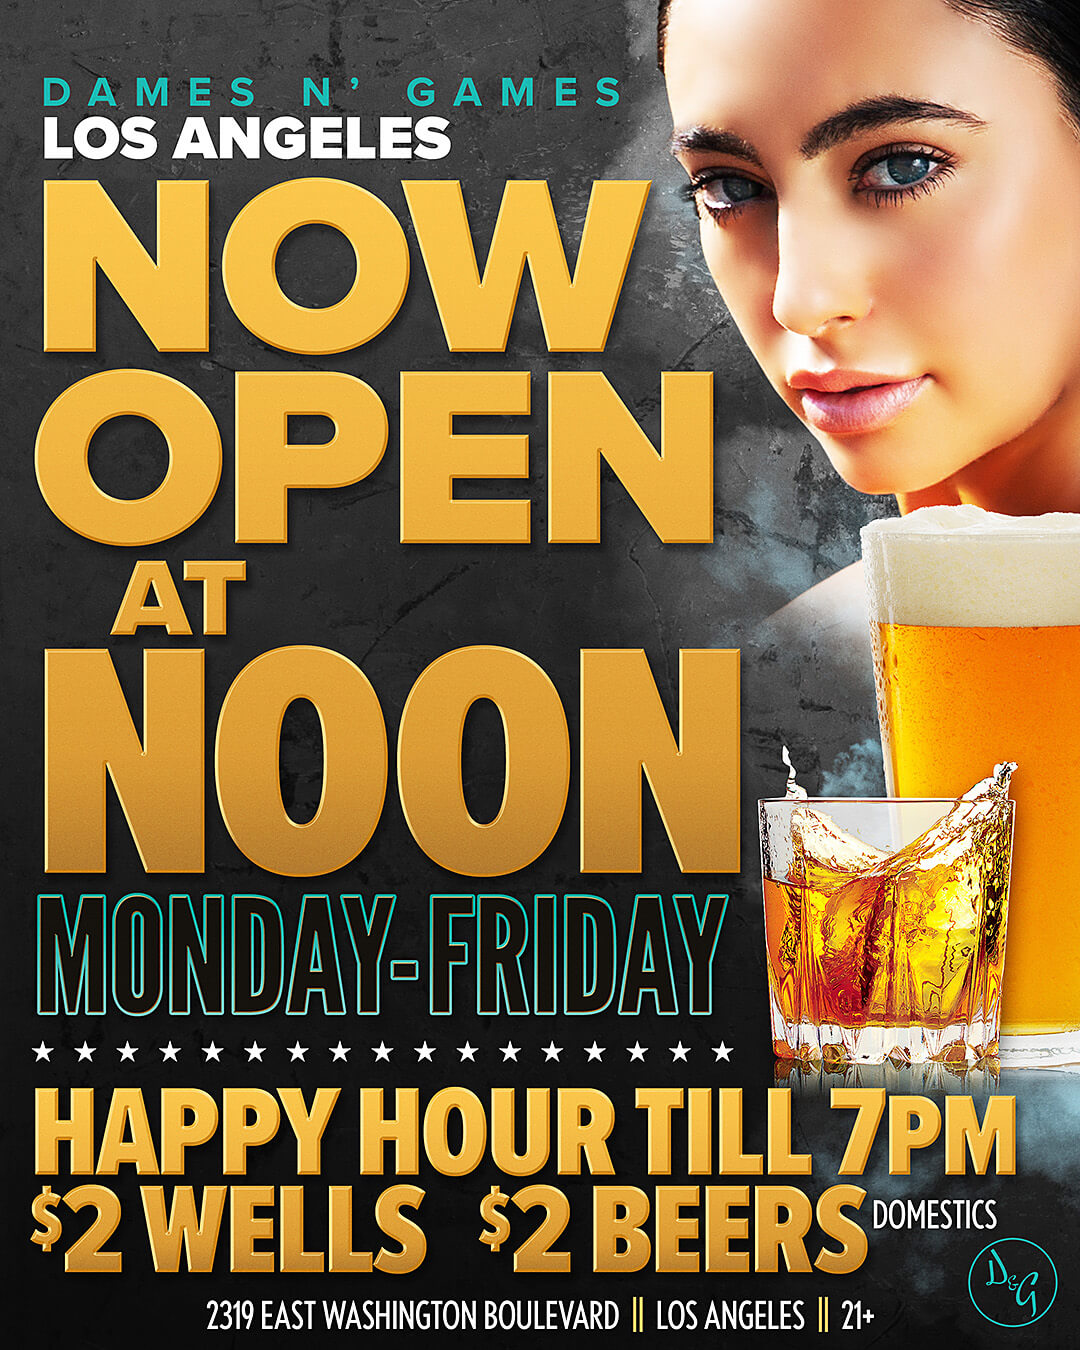 Open at Noon on the Weekdays